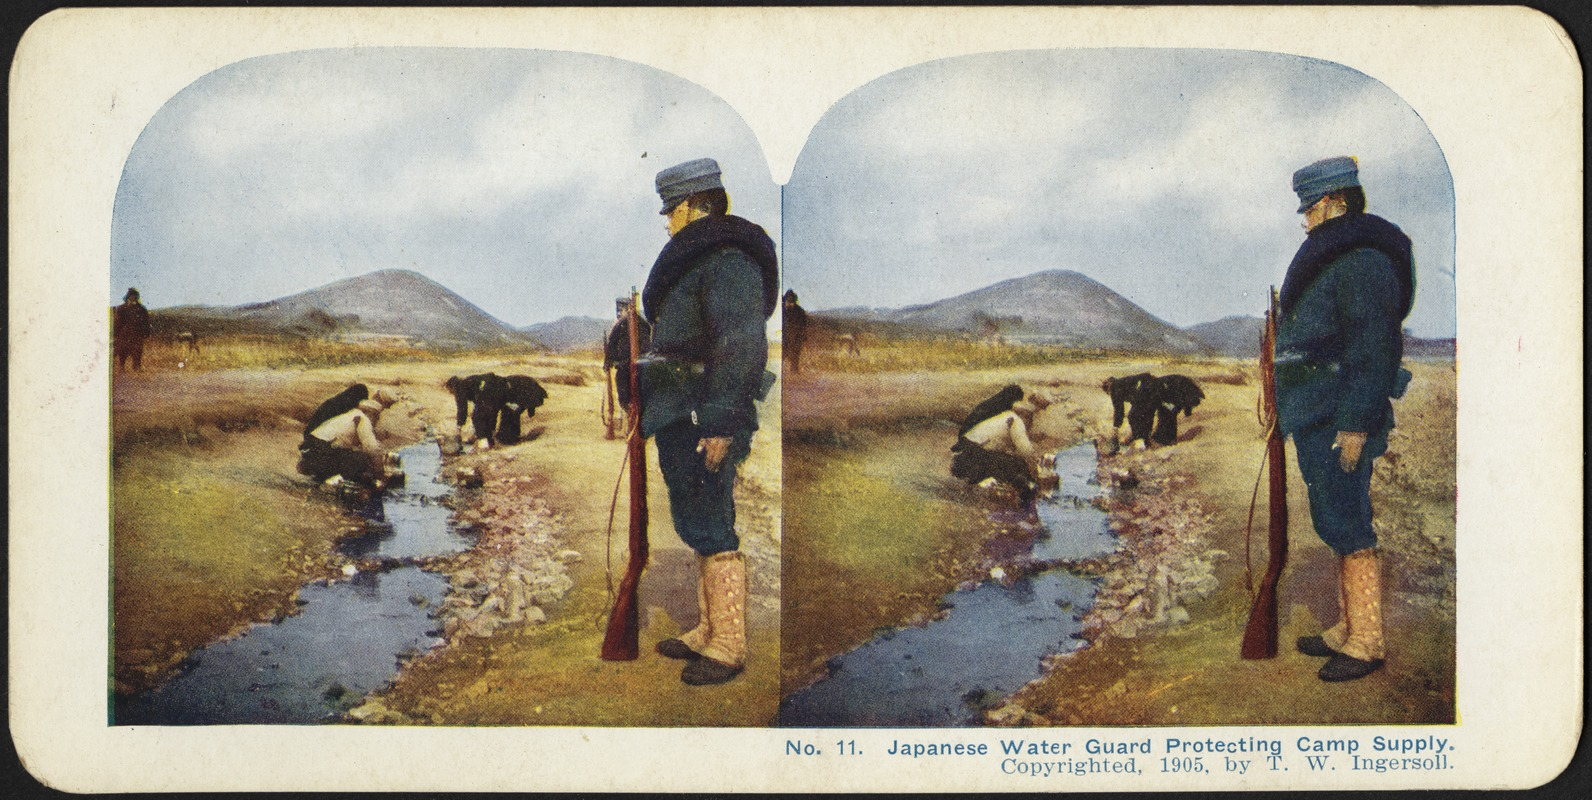 Japanese water guard protecting the camp's supply from contamination